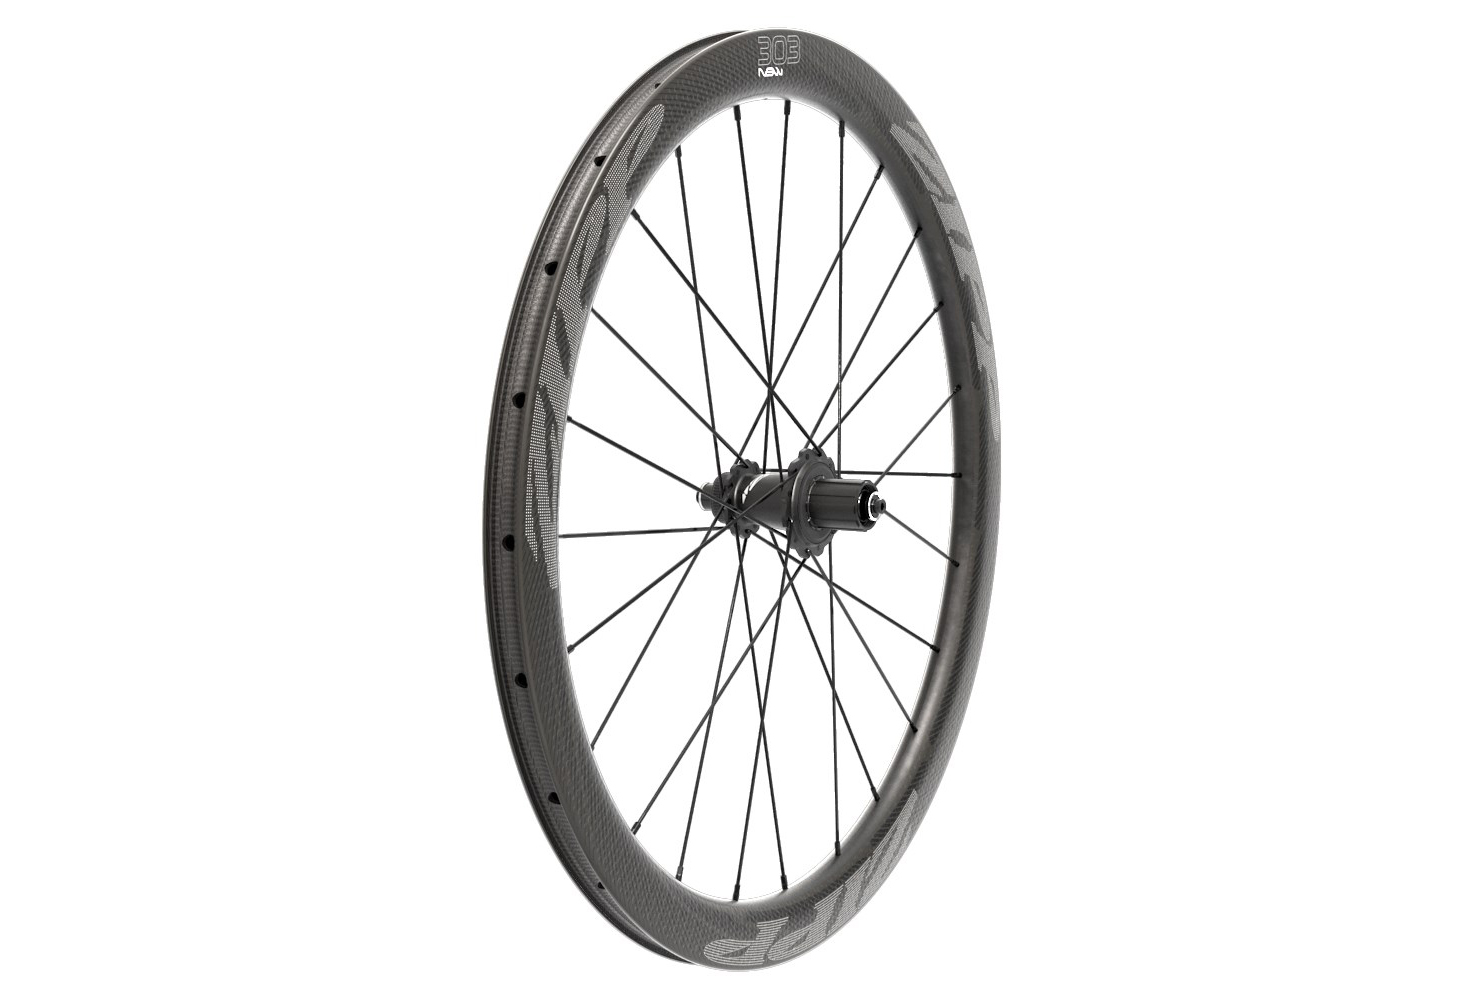 roue arri re zipp 303 nsw tubeless disc 9x135mm 12x142mm corps campagnolo. Black Bedroom Furniture Sets. Home Design Ideas